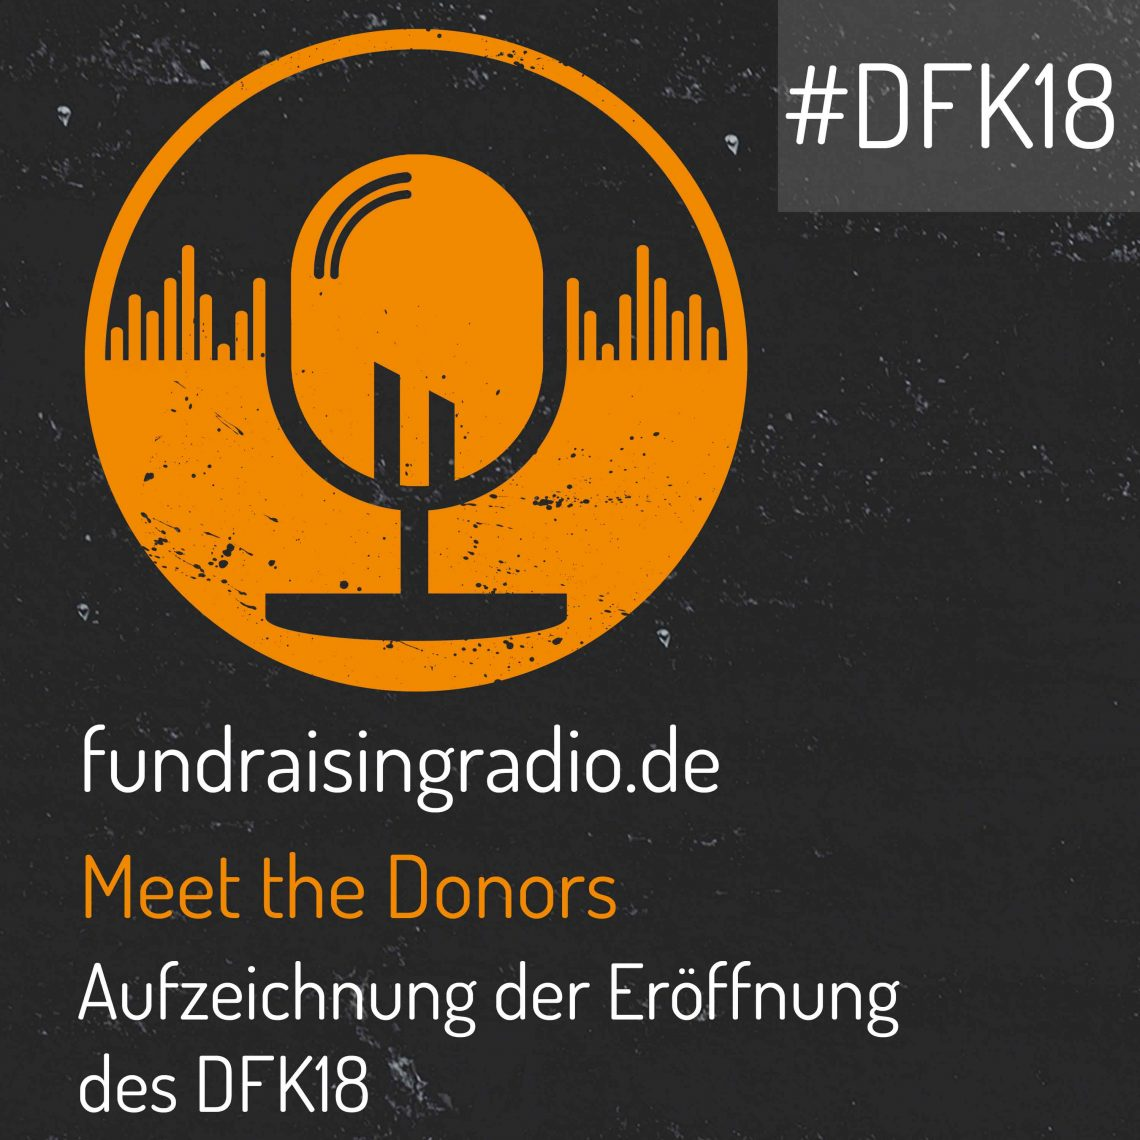 Meet the Donors - DFK18